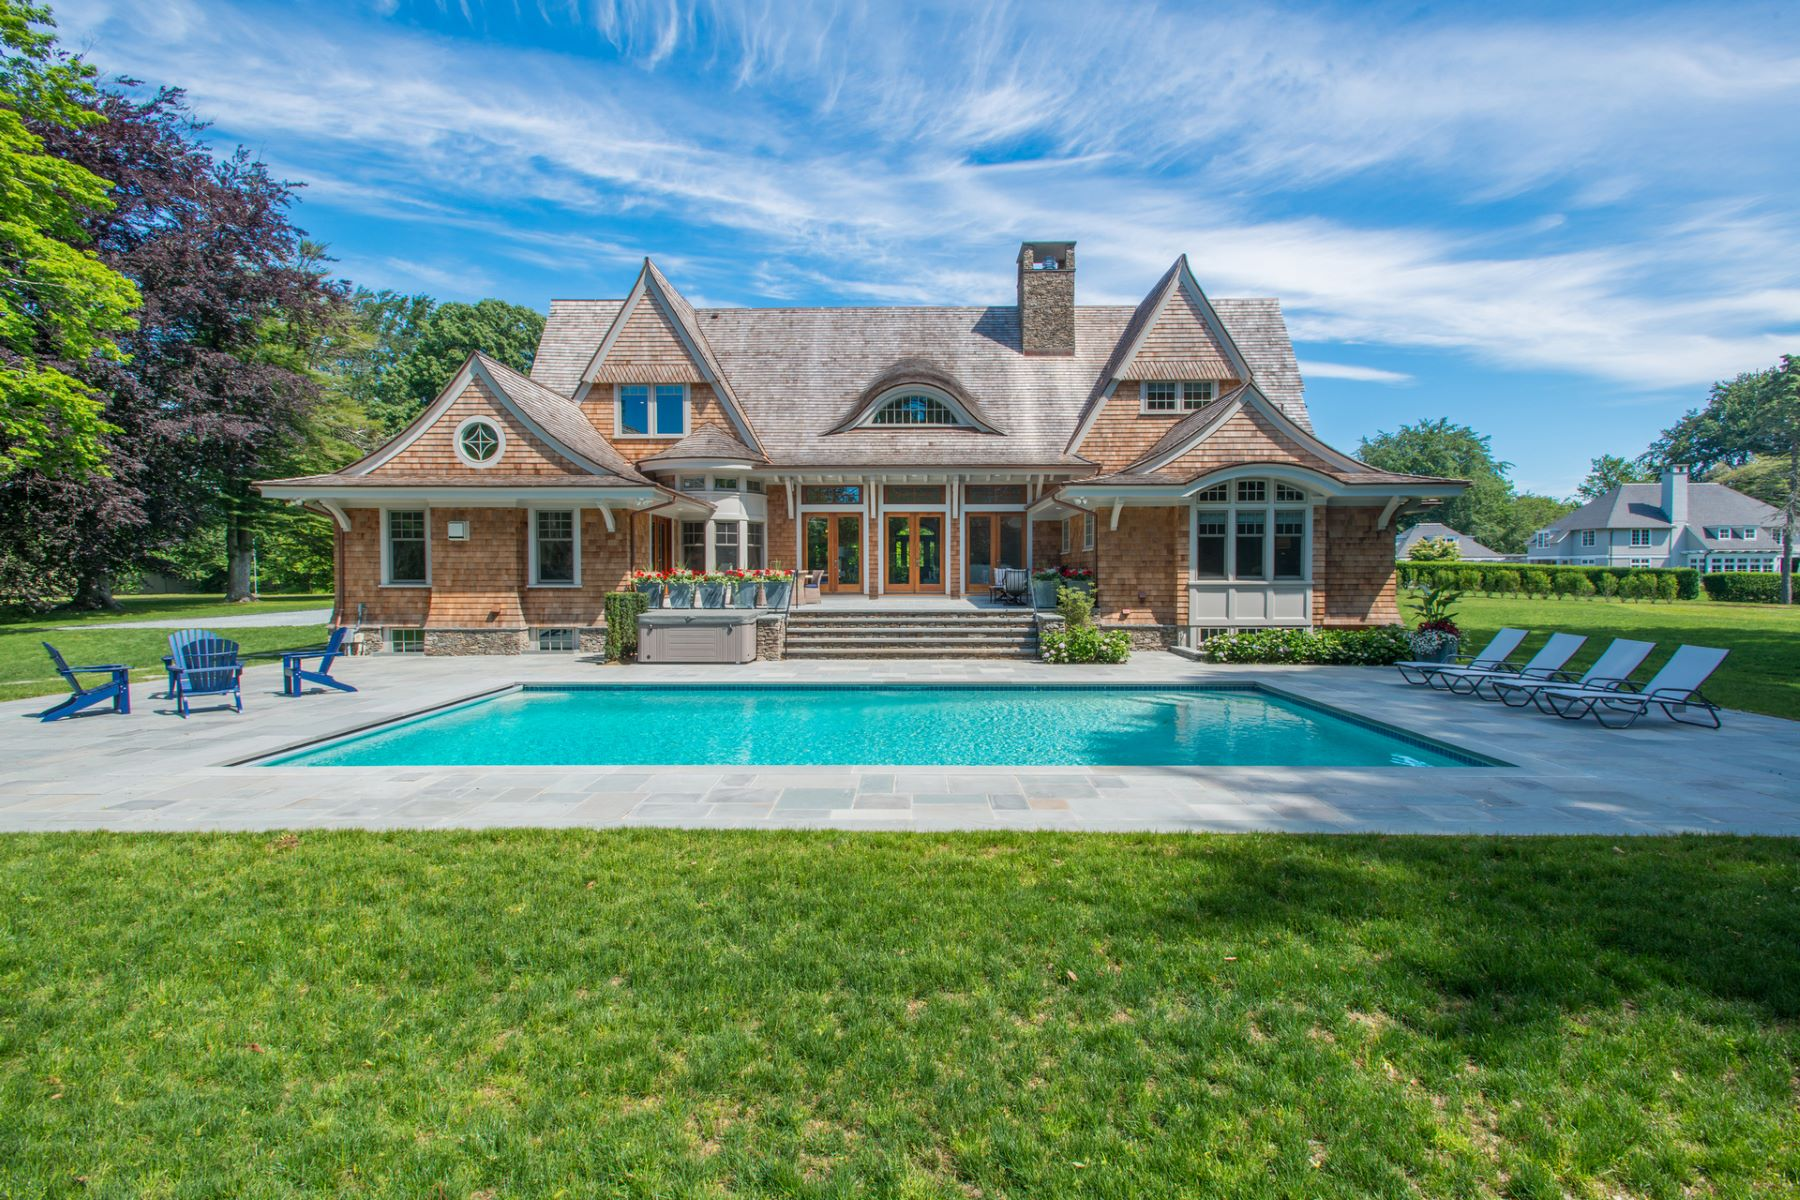 Single Family Home for Sale at Ocean Lawn 10 Ocean Lawn Lane Newport, Rhode Island, 02840 United States